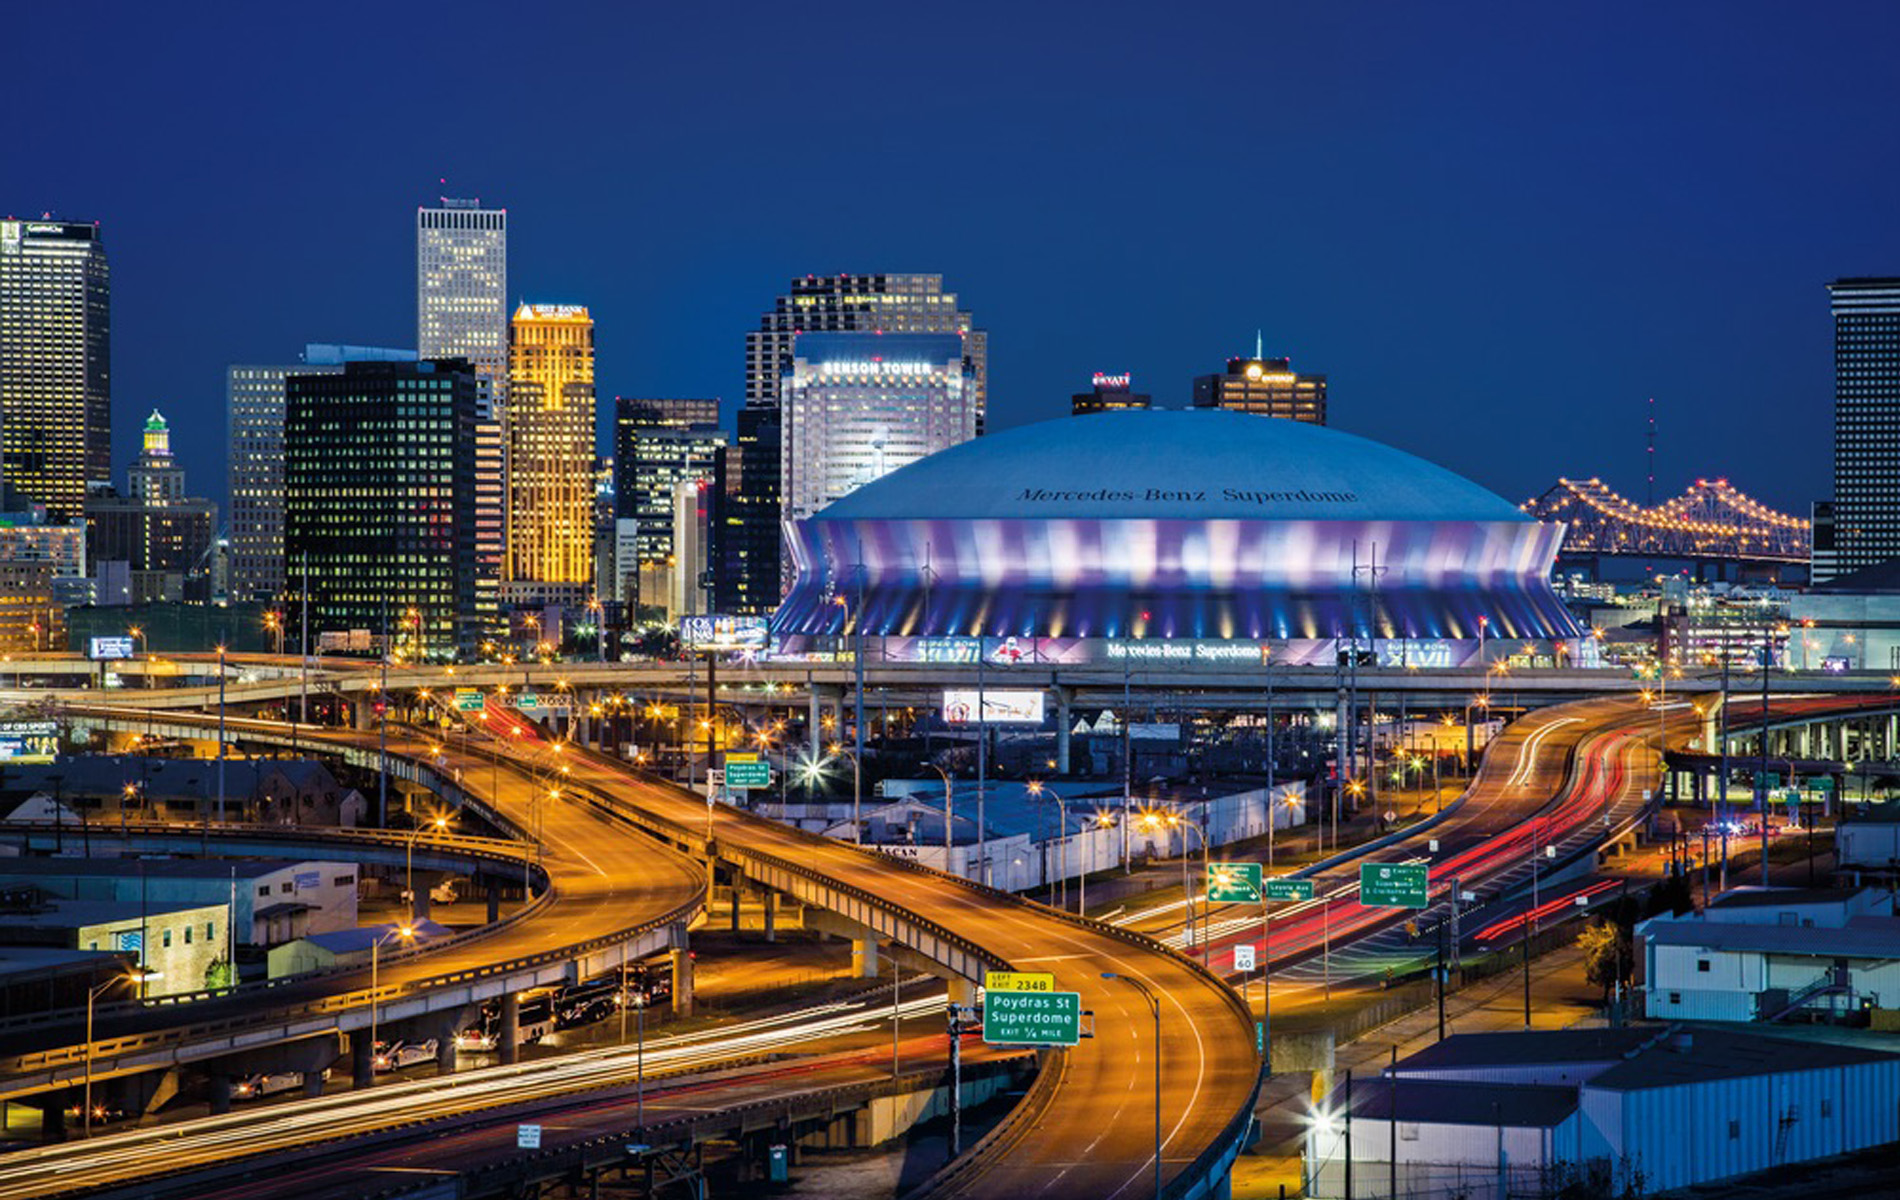 City view of New Orleans Louisiana